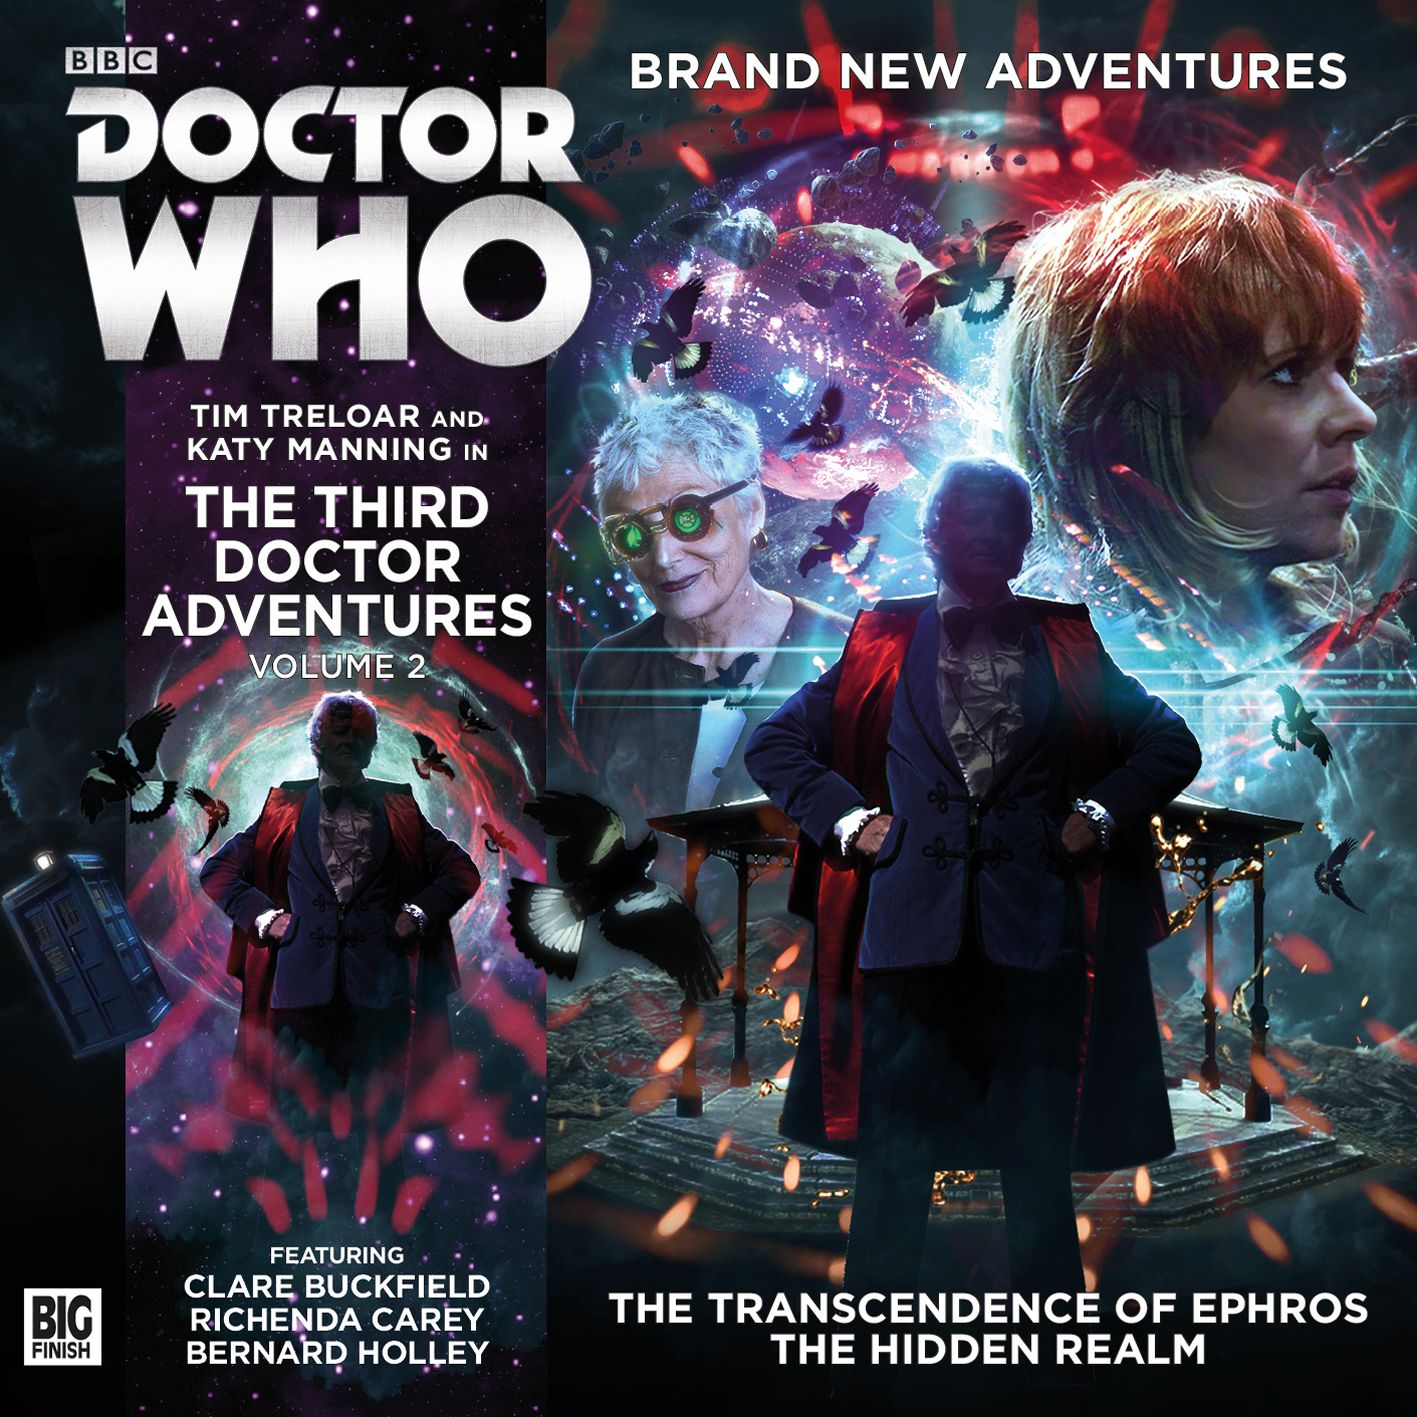 The Third Doctor Adventures: Volume 2 (Credit: Big Finish)